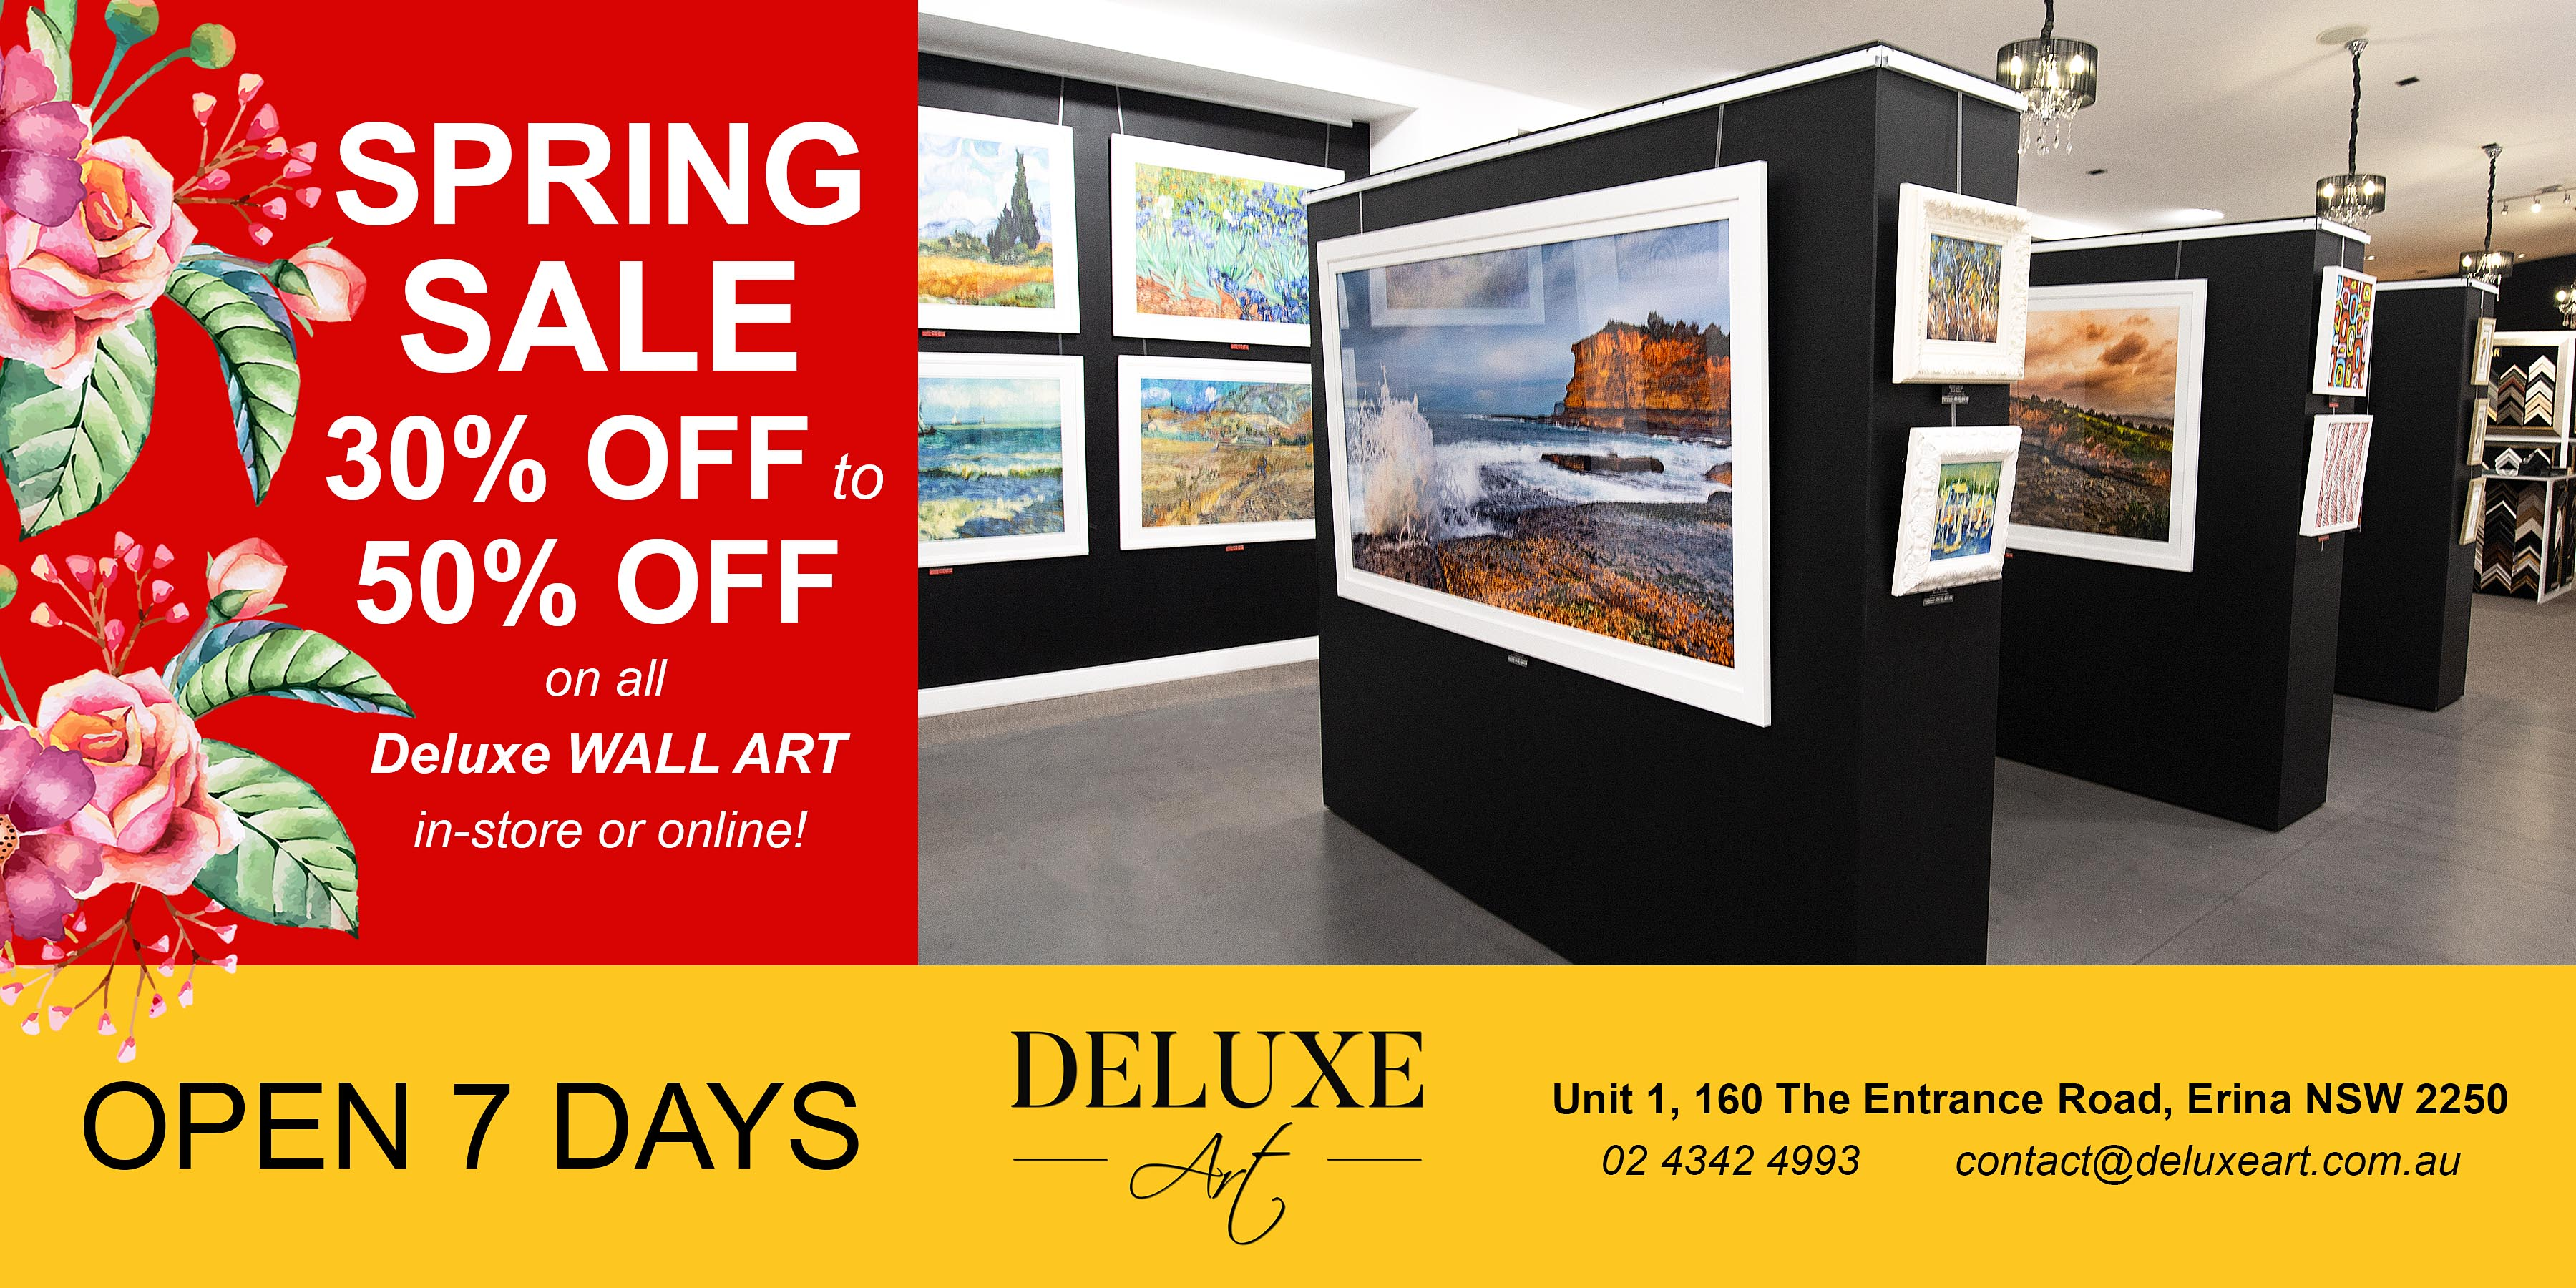 Deluxe Art Wall Art Gallery Central Coast SPRING SALE 12Sep19.v2